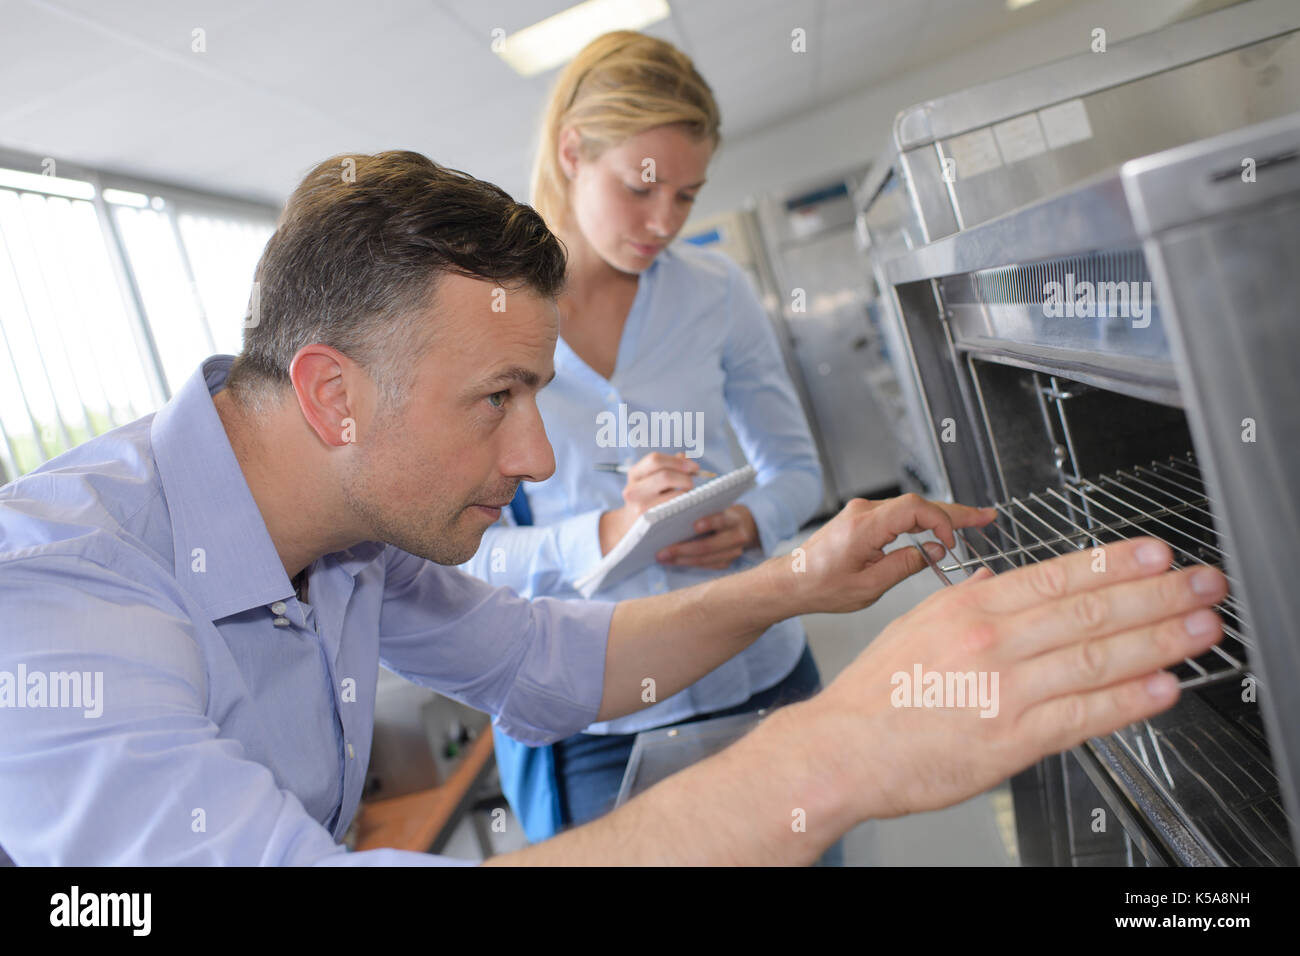 scientist opening high tech oven - Stock Image